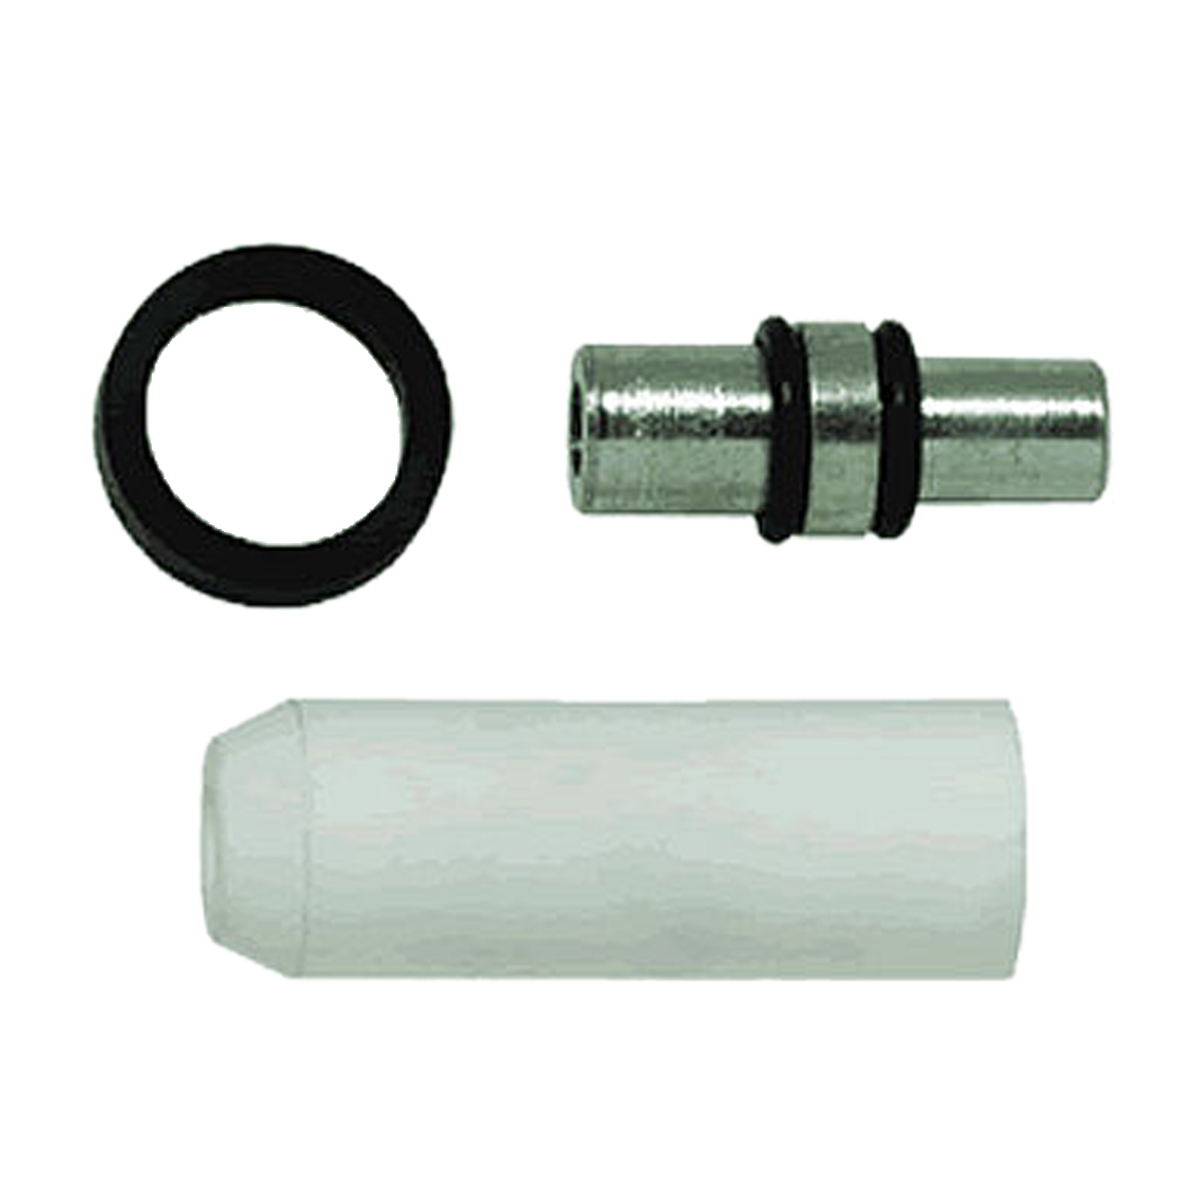 Campbell Hausfeld CH Ceramic Nozzle Kit (MP310900AV) product image center